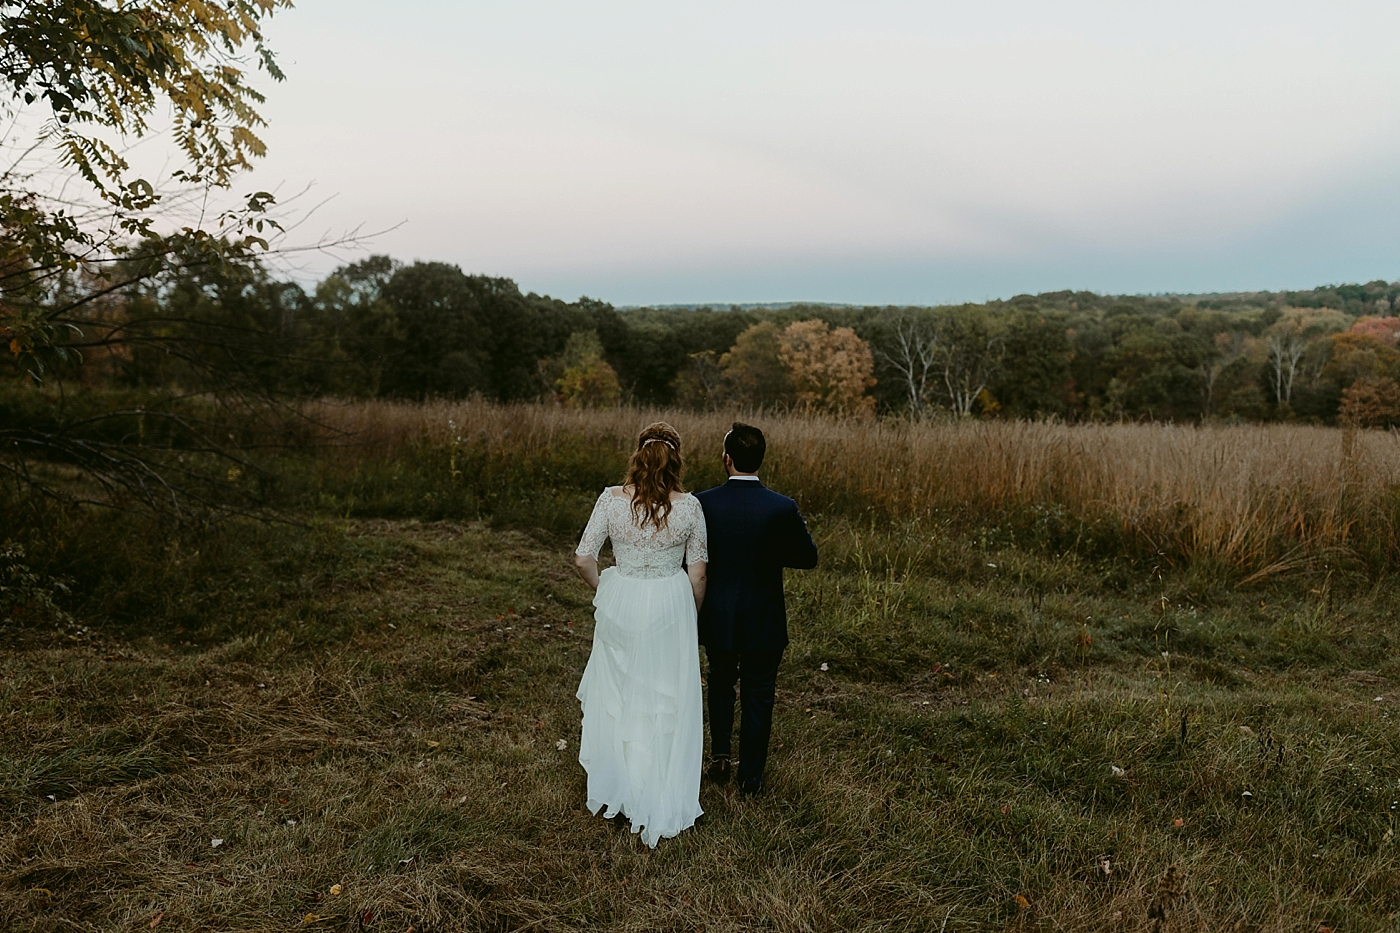 October-Backyard-Wedding_Rachel+Brian_MJPHOTO-1088.jpg